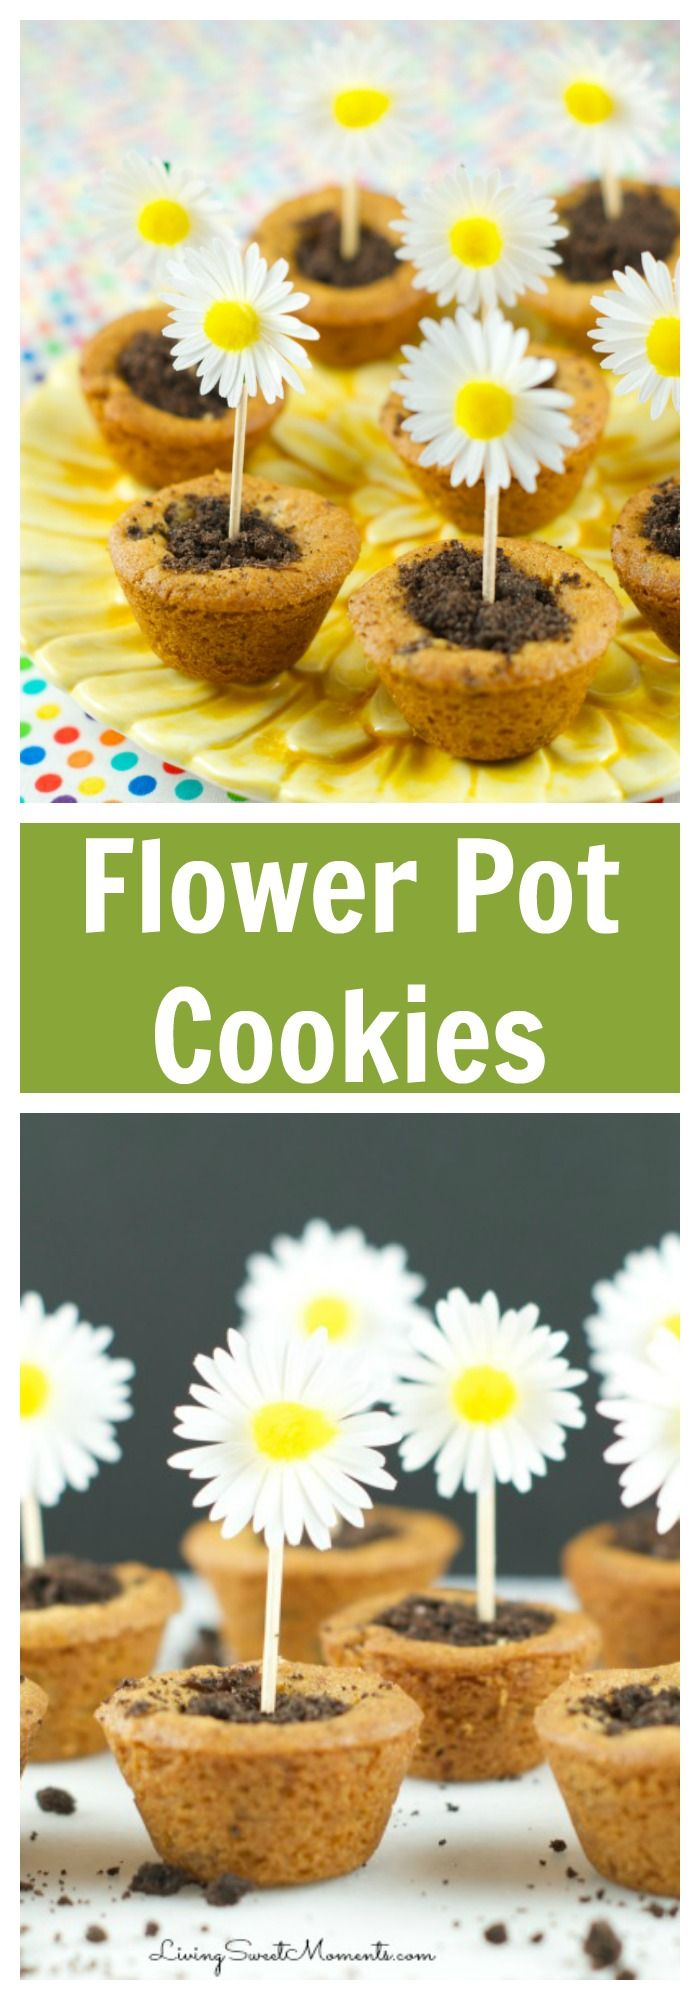 Flower Pot Cookies Recipe Easy cookie recipes, Best